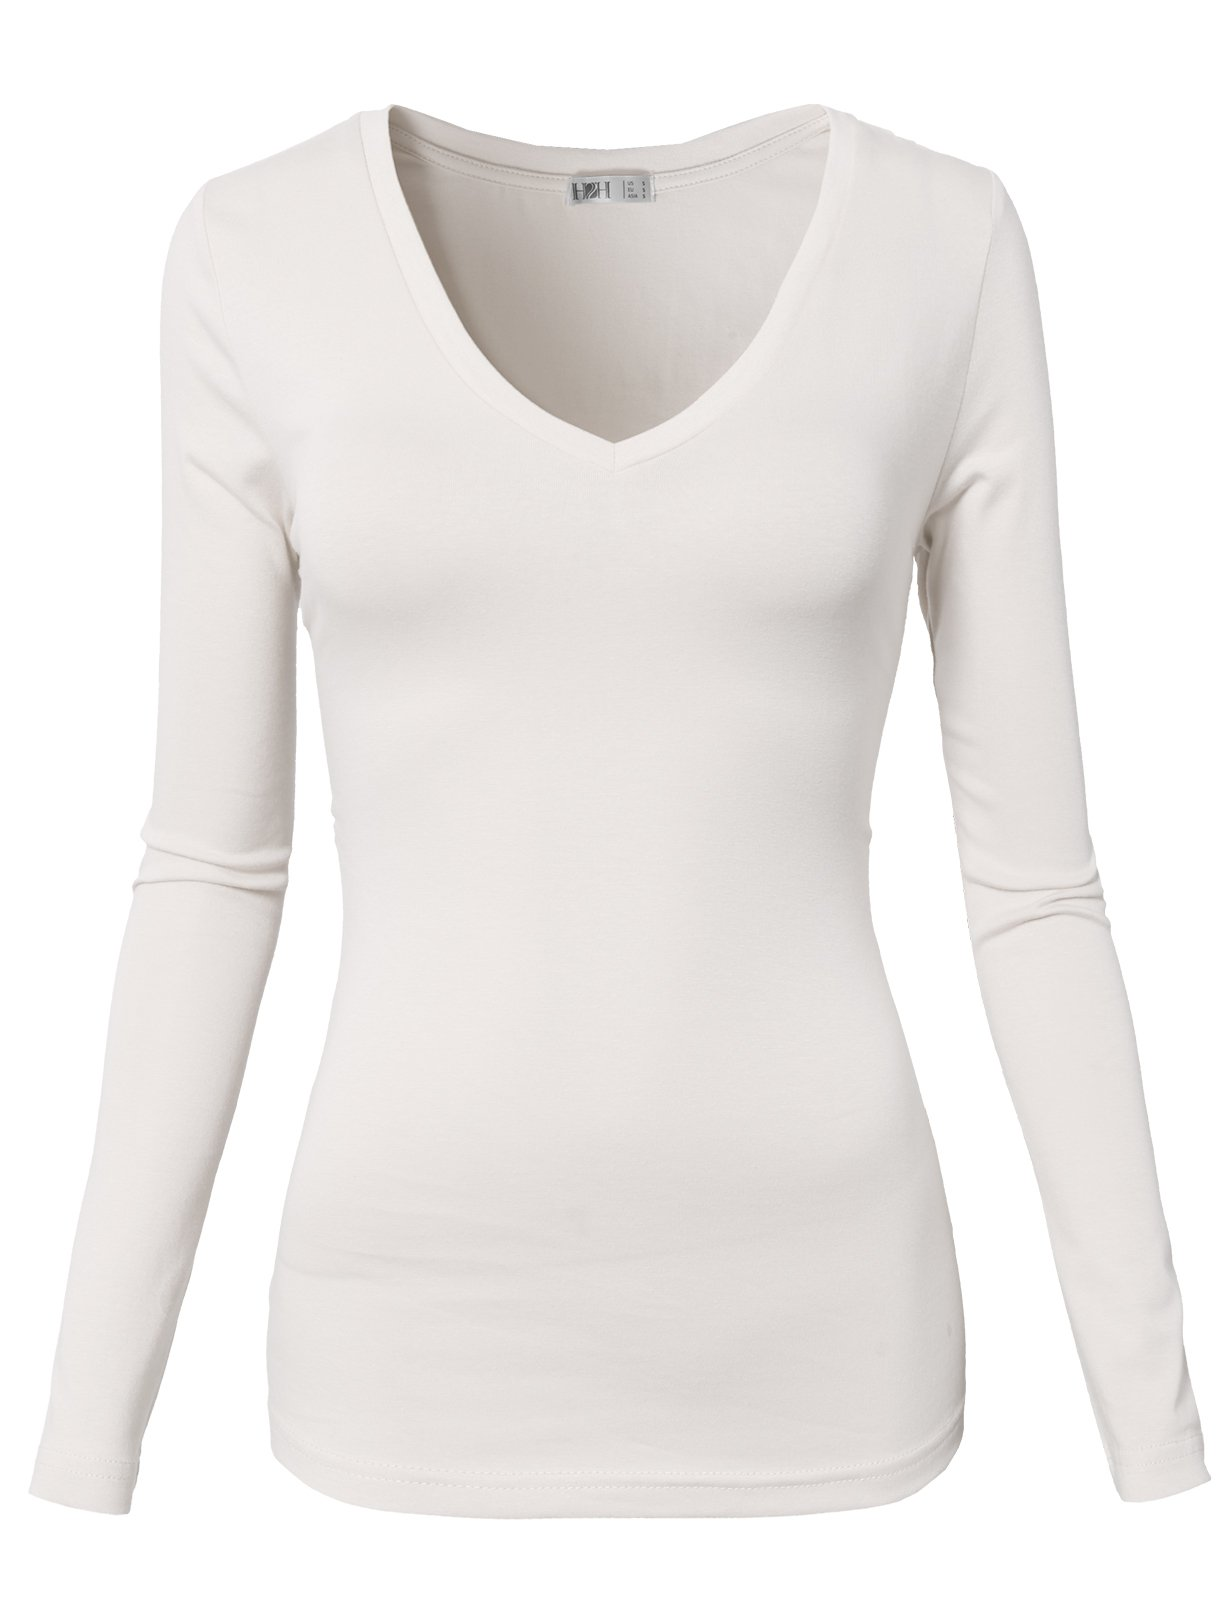 H2H Womens Basic Slim Fit Tri-Blend Long-Sleeve Scoop Tee White US S/Asia S (CWTTL0172)